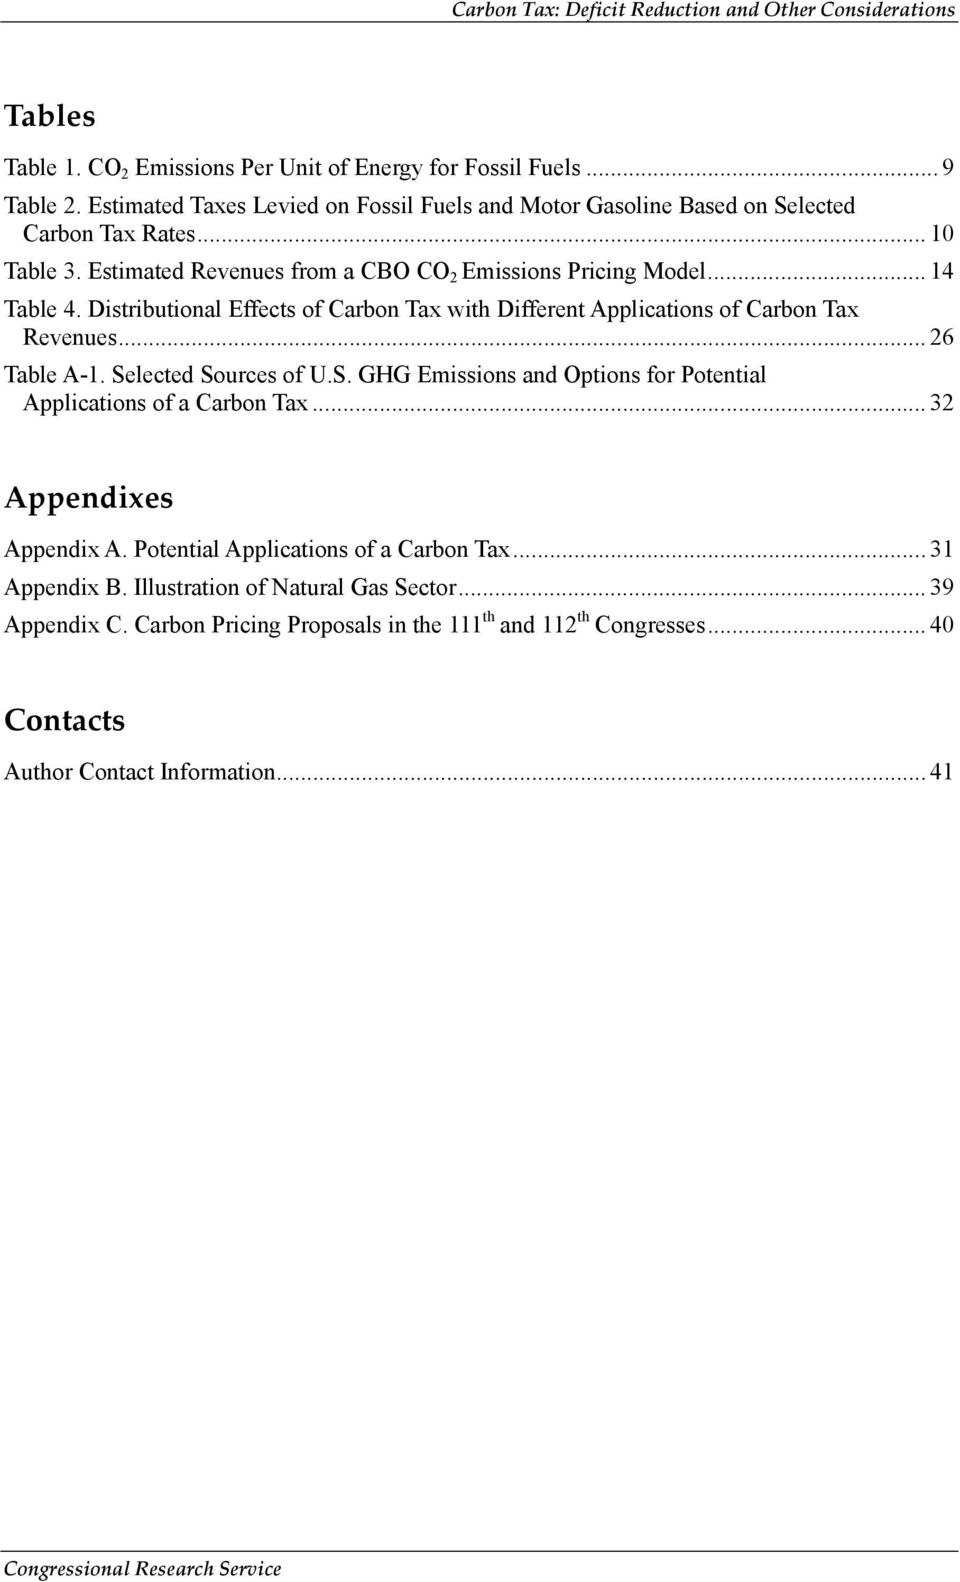 .. 26 Table A-1. Selected Sources of U.S. GHG Emissions and Options for Potential Applications of a Carbon Tax... 32 Appendixes Appendix A. Potential Applications of a Carbon Tax... 31 Appendix B.